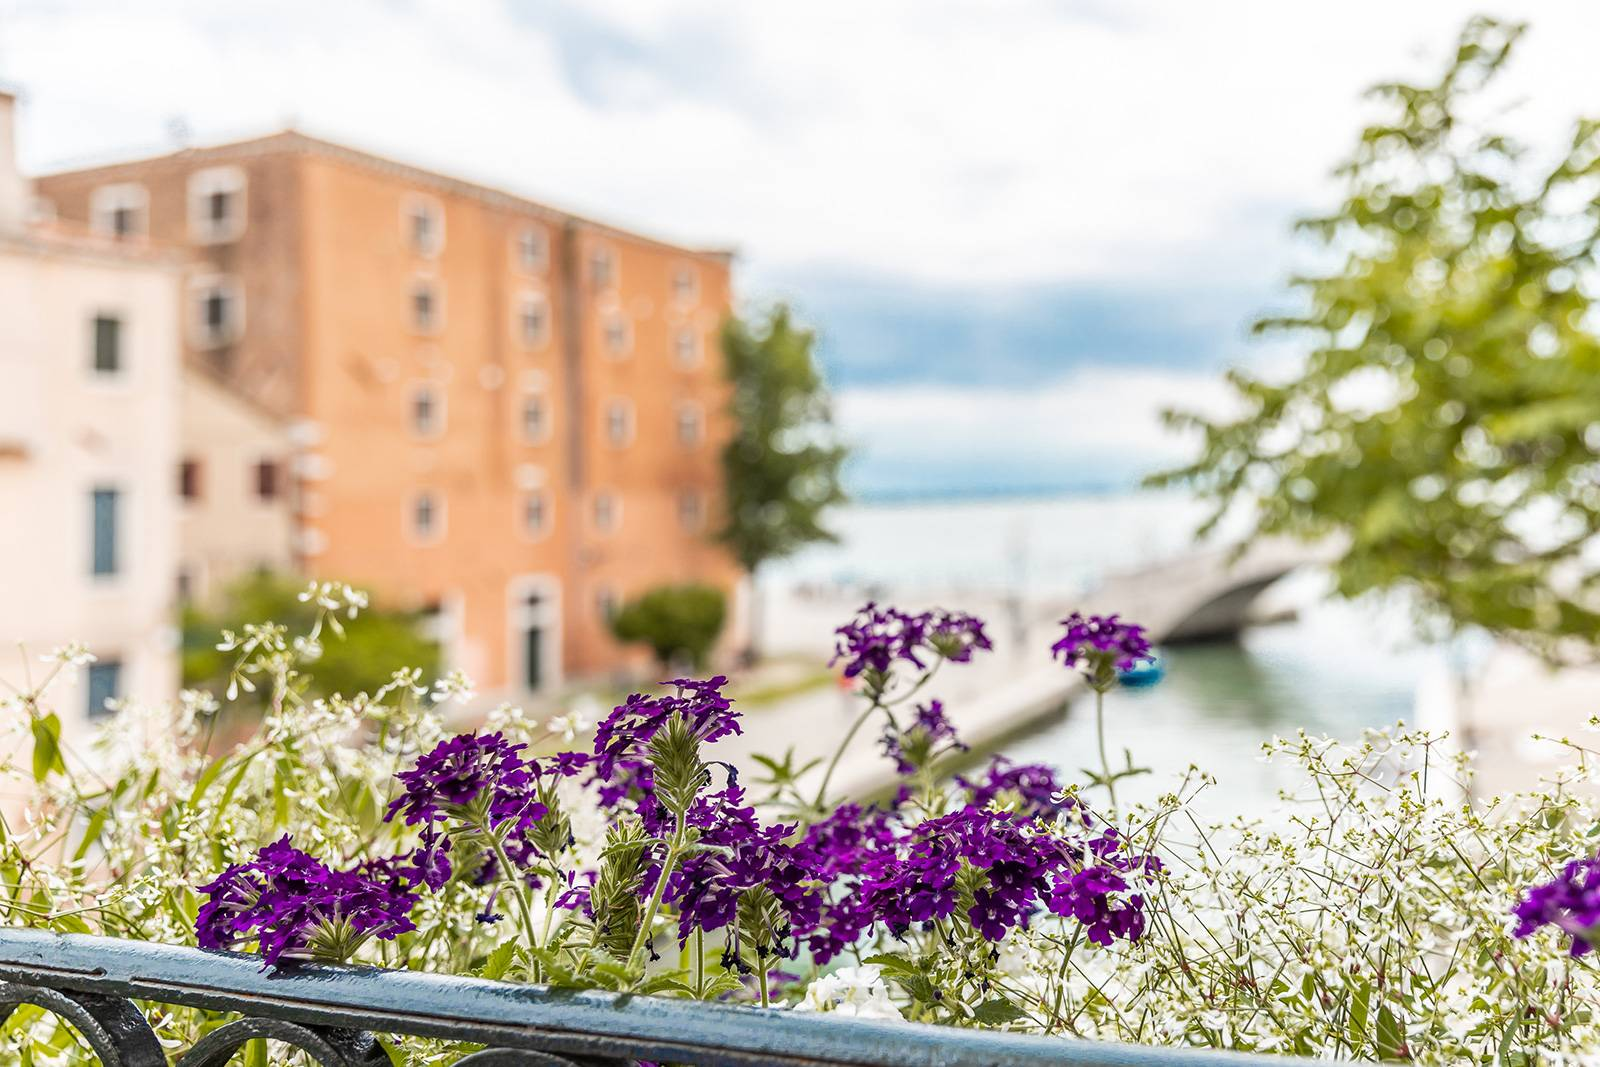 enjoy your holiday in Venice at the Alcova apartment!